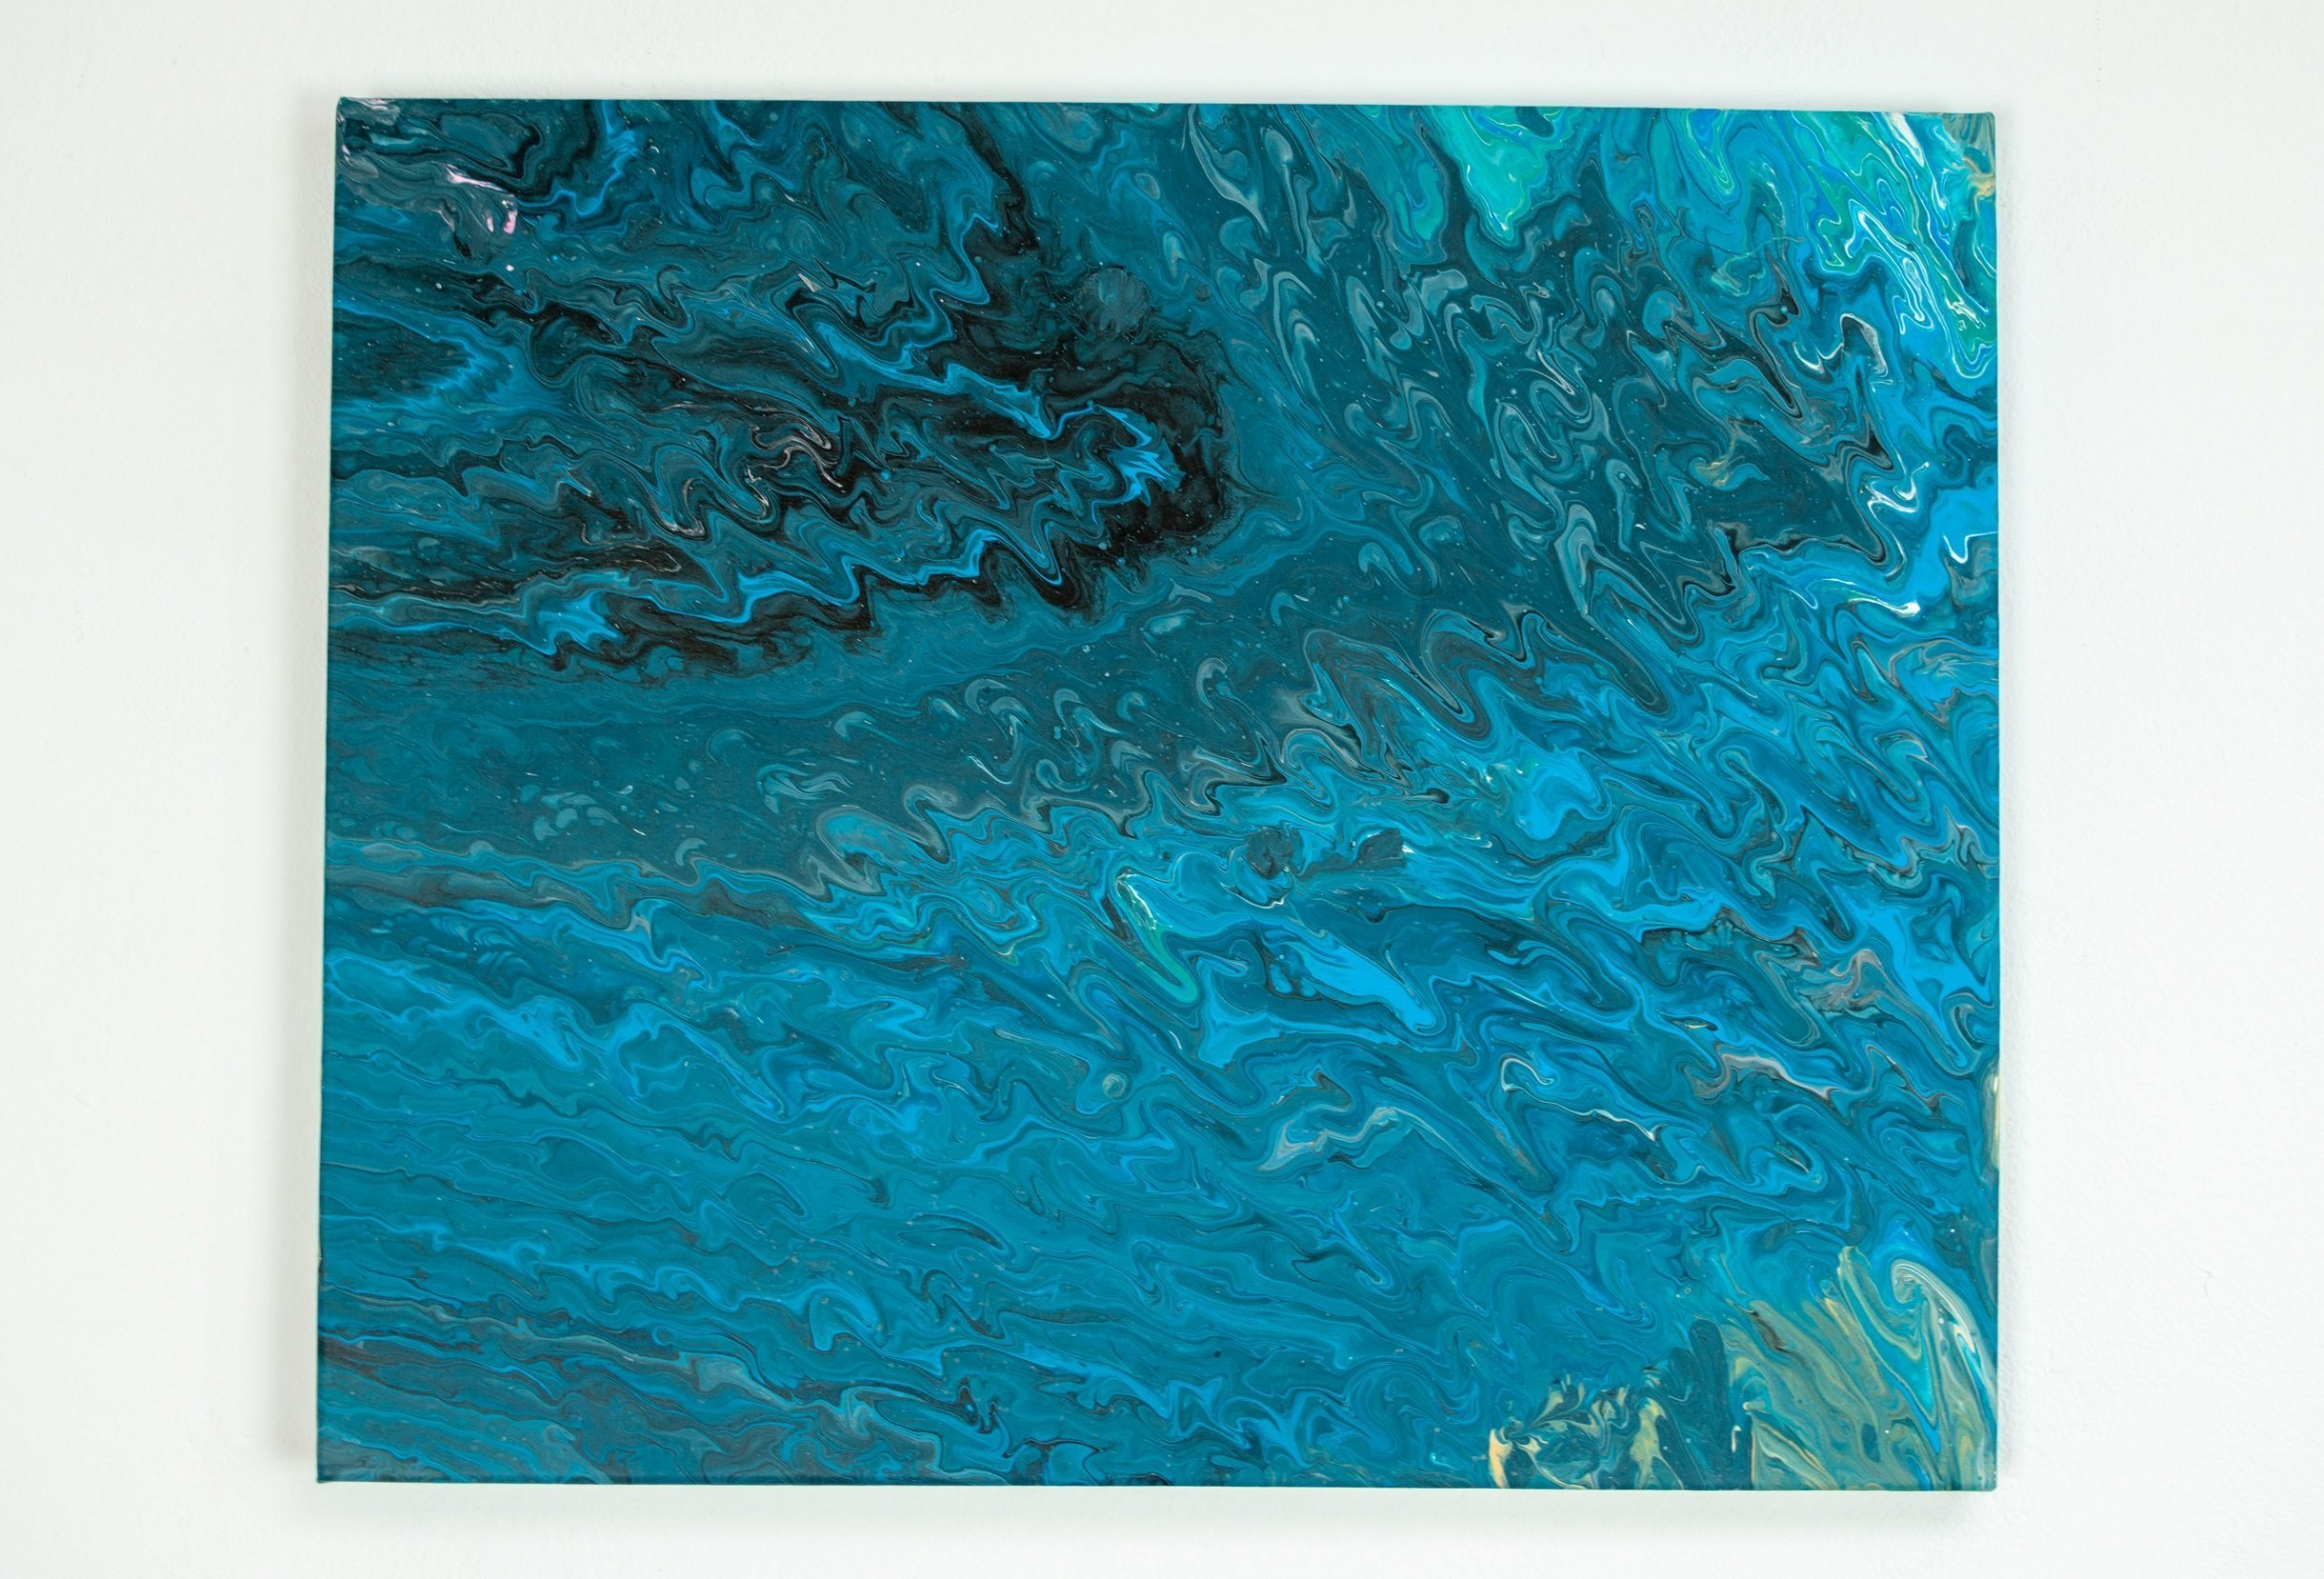 Abstract Art black and blue perspective